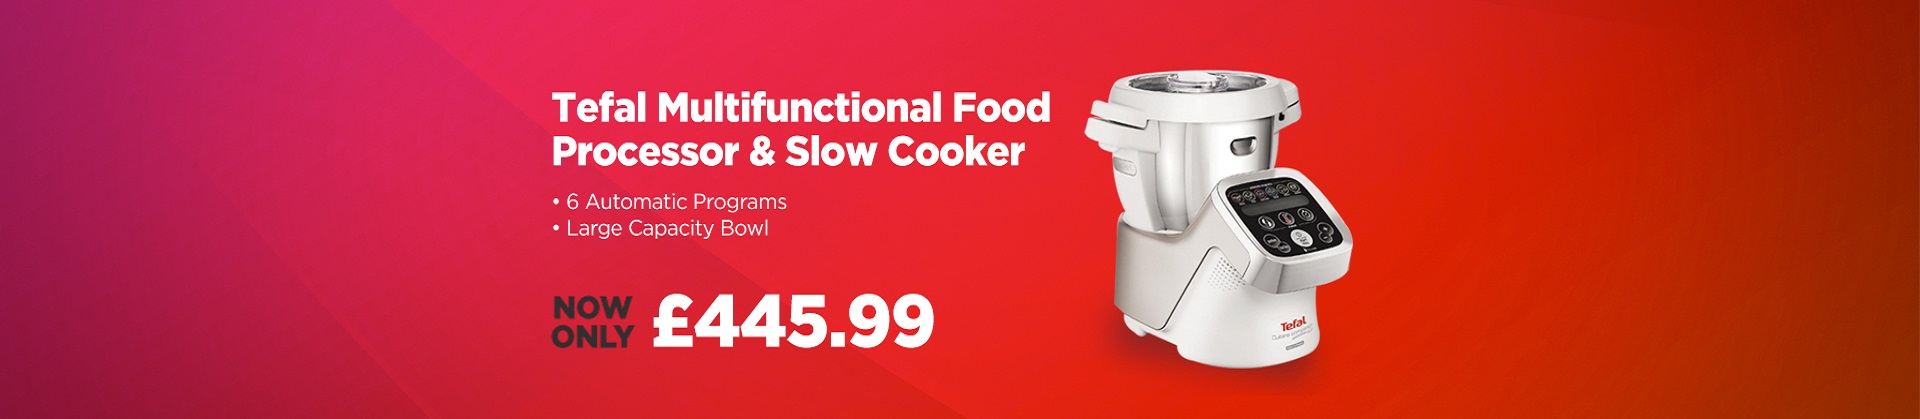 Amazing savings on Tefal FE800 Cuisine companion